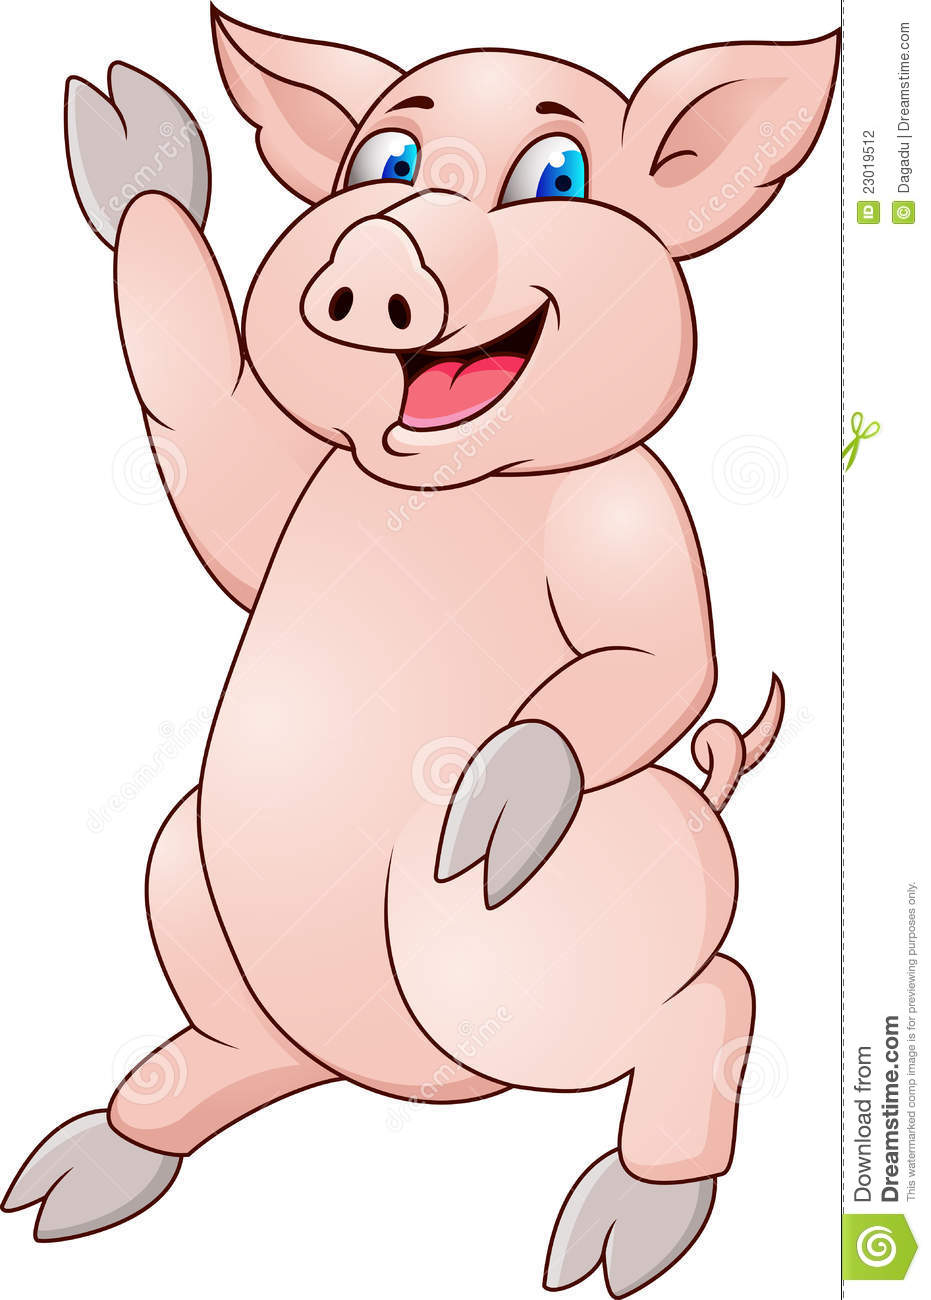 Funny Pig Cartoon Stock Photography - Image: 23019512